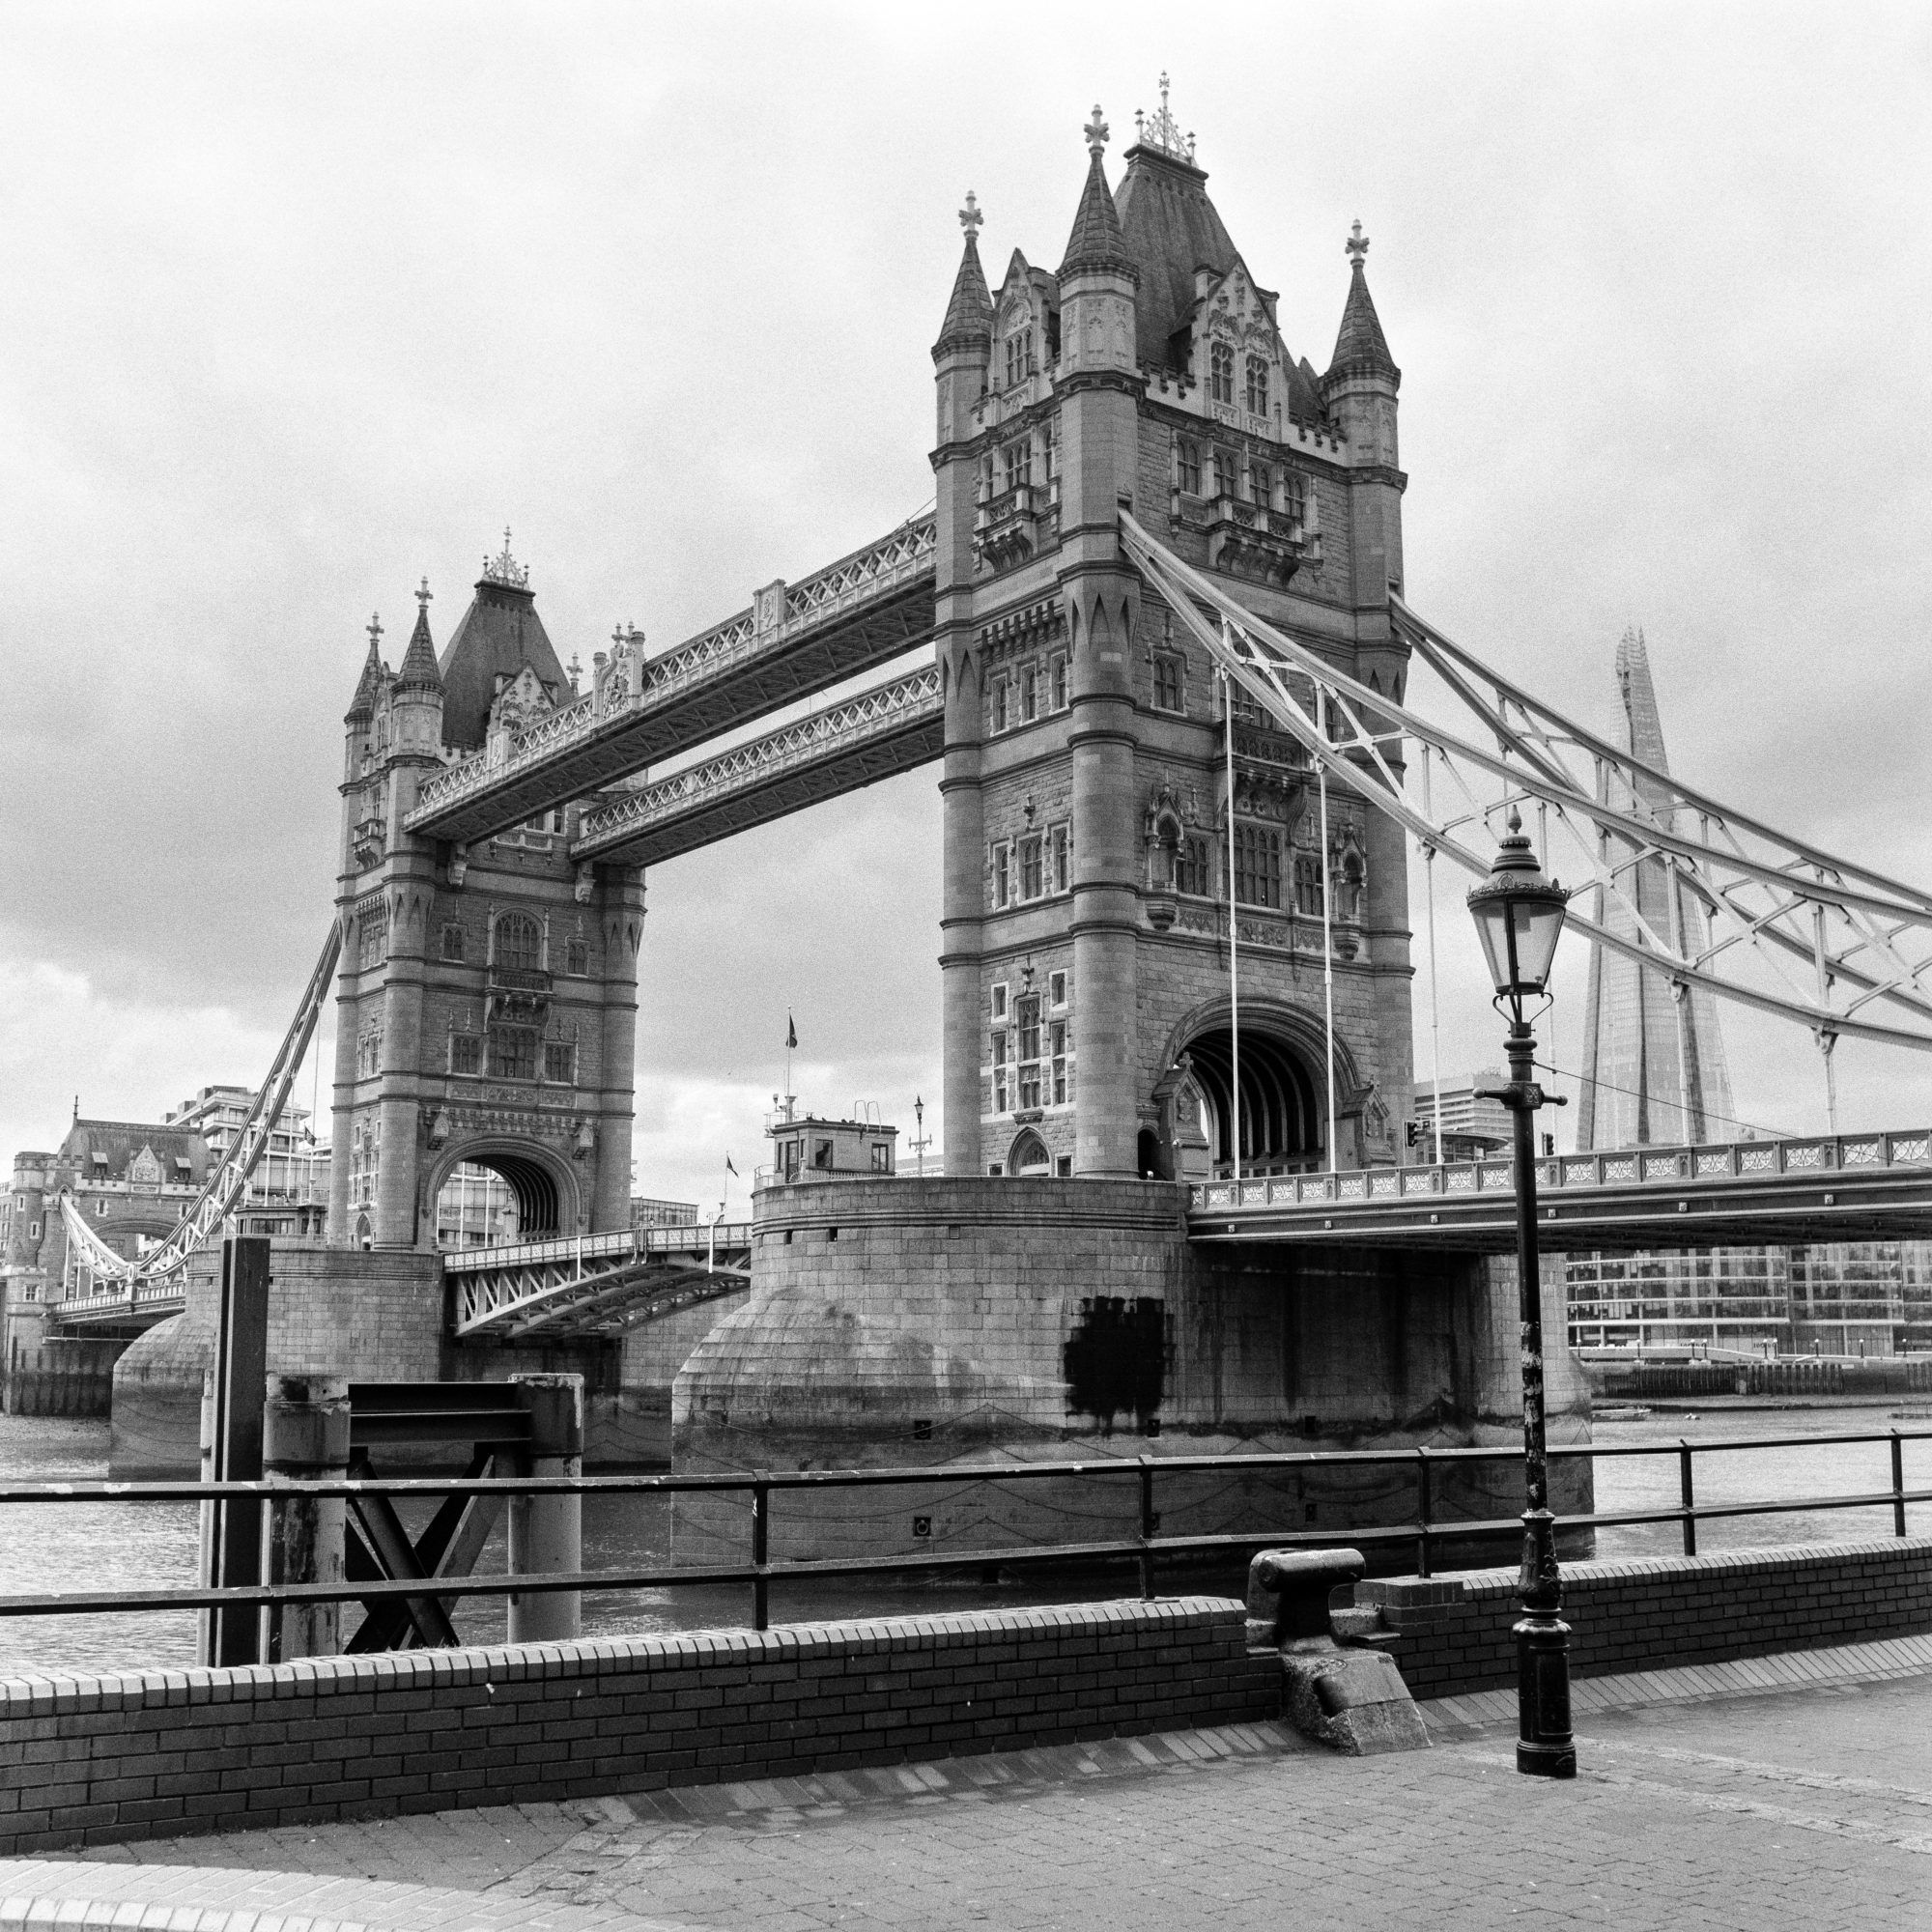 Tower Bridge (Pic: Giacomo Mantovani)